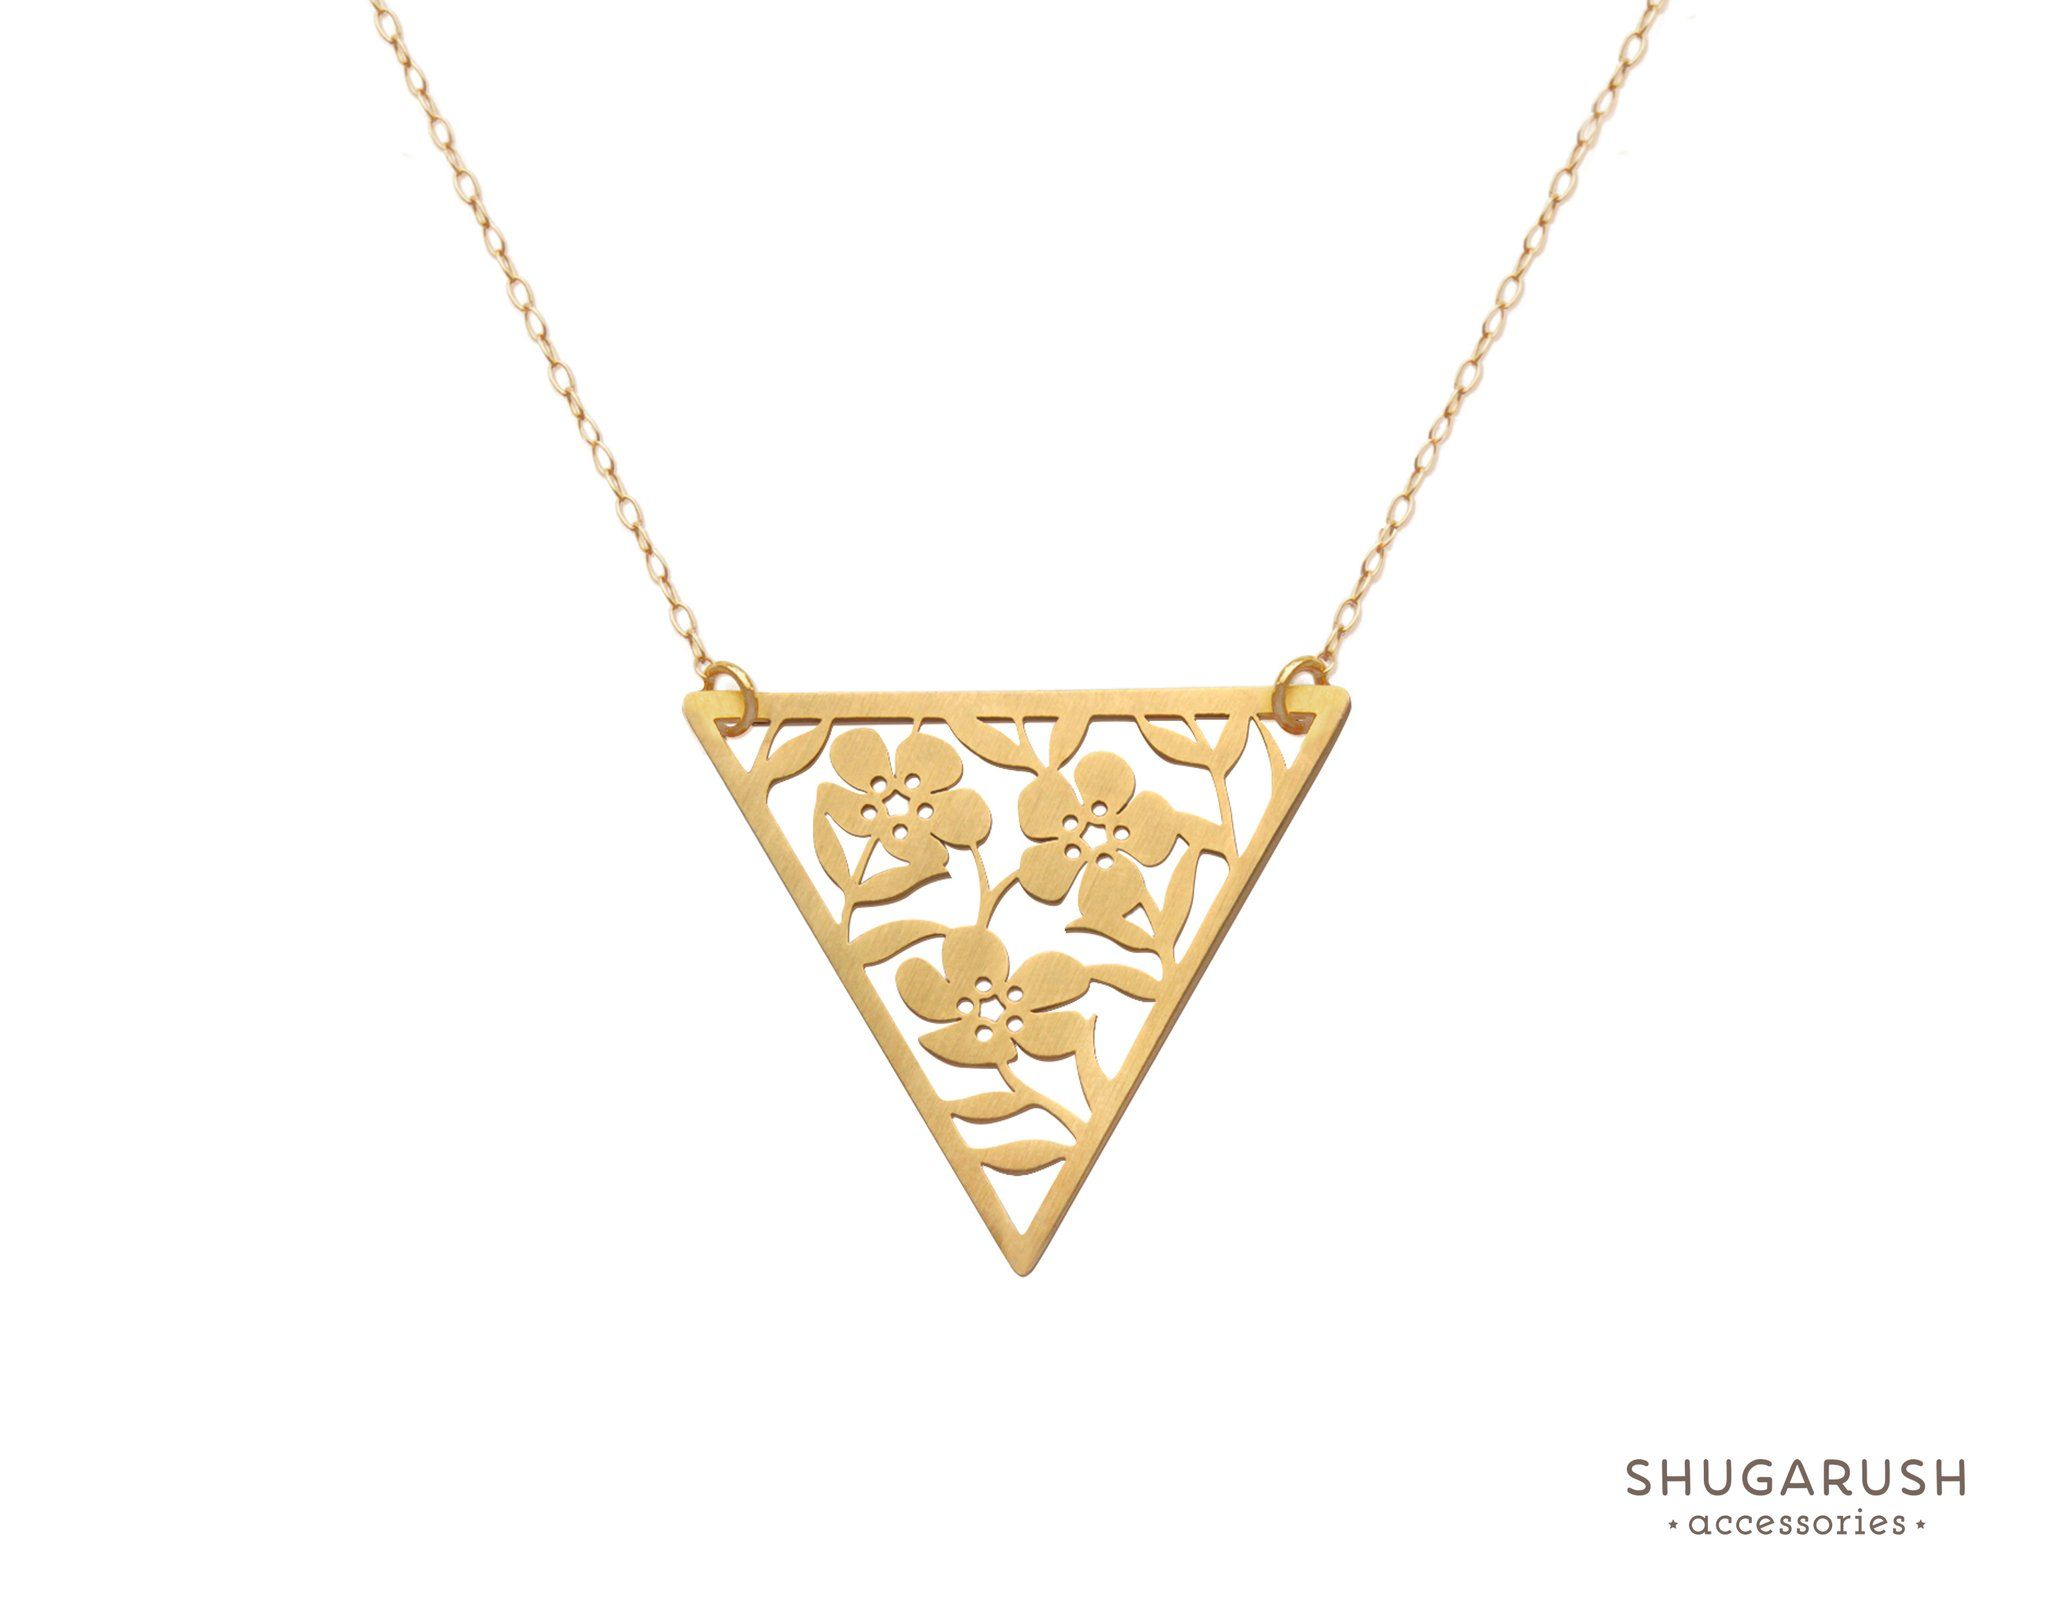 Triangle Lace Flower Gold Necklace | Shugarush Accessories ...